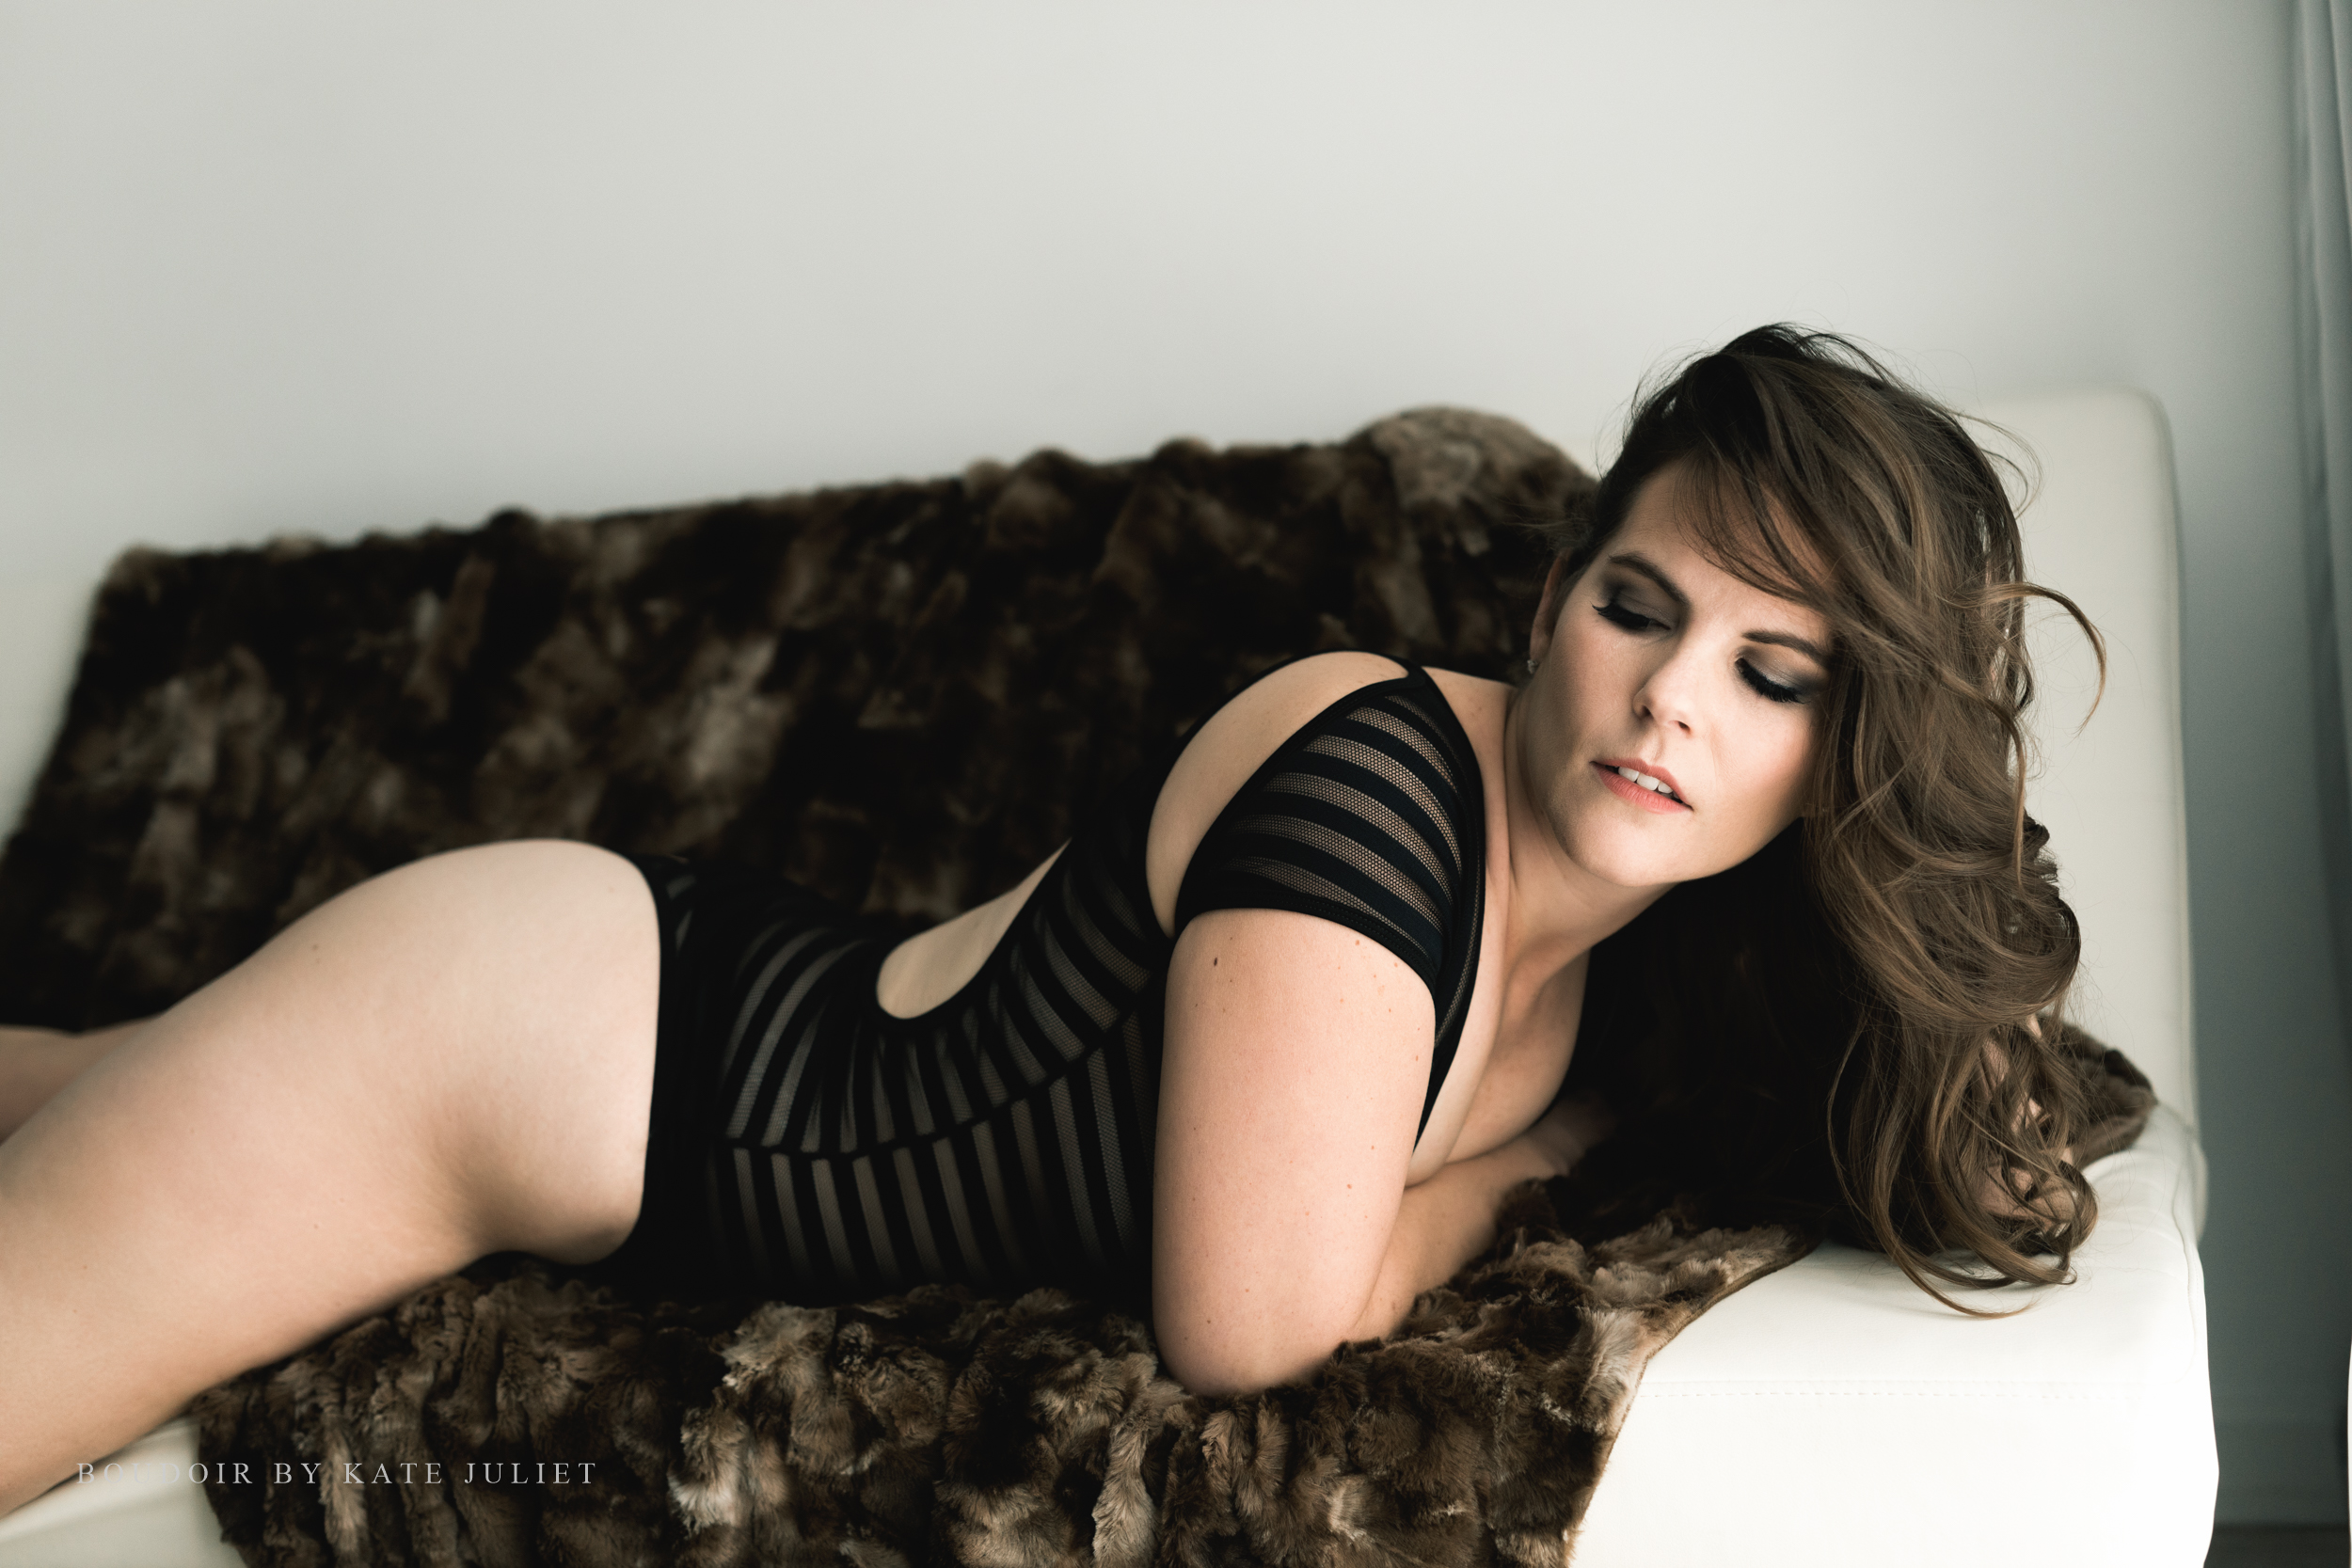 kate juliet photography - boudoir - web-1.jpg